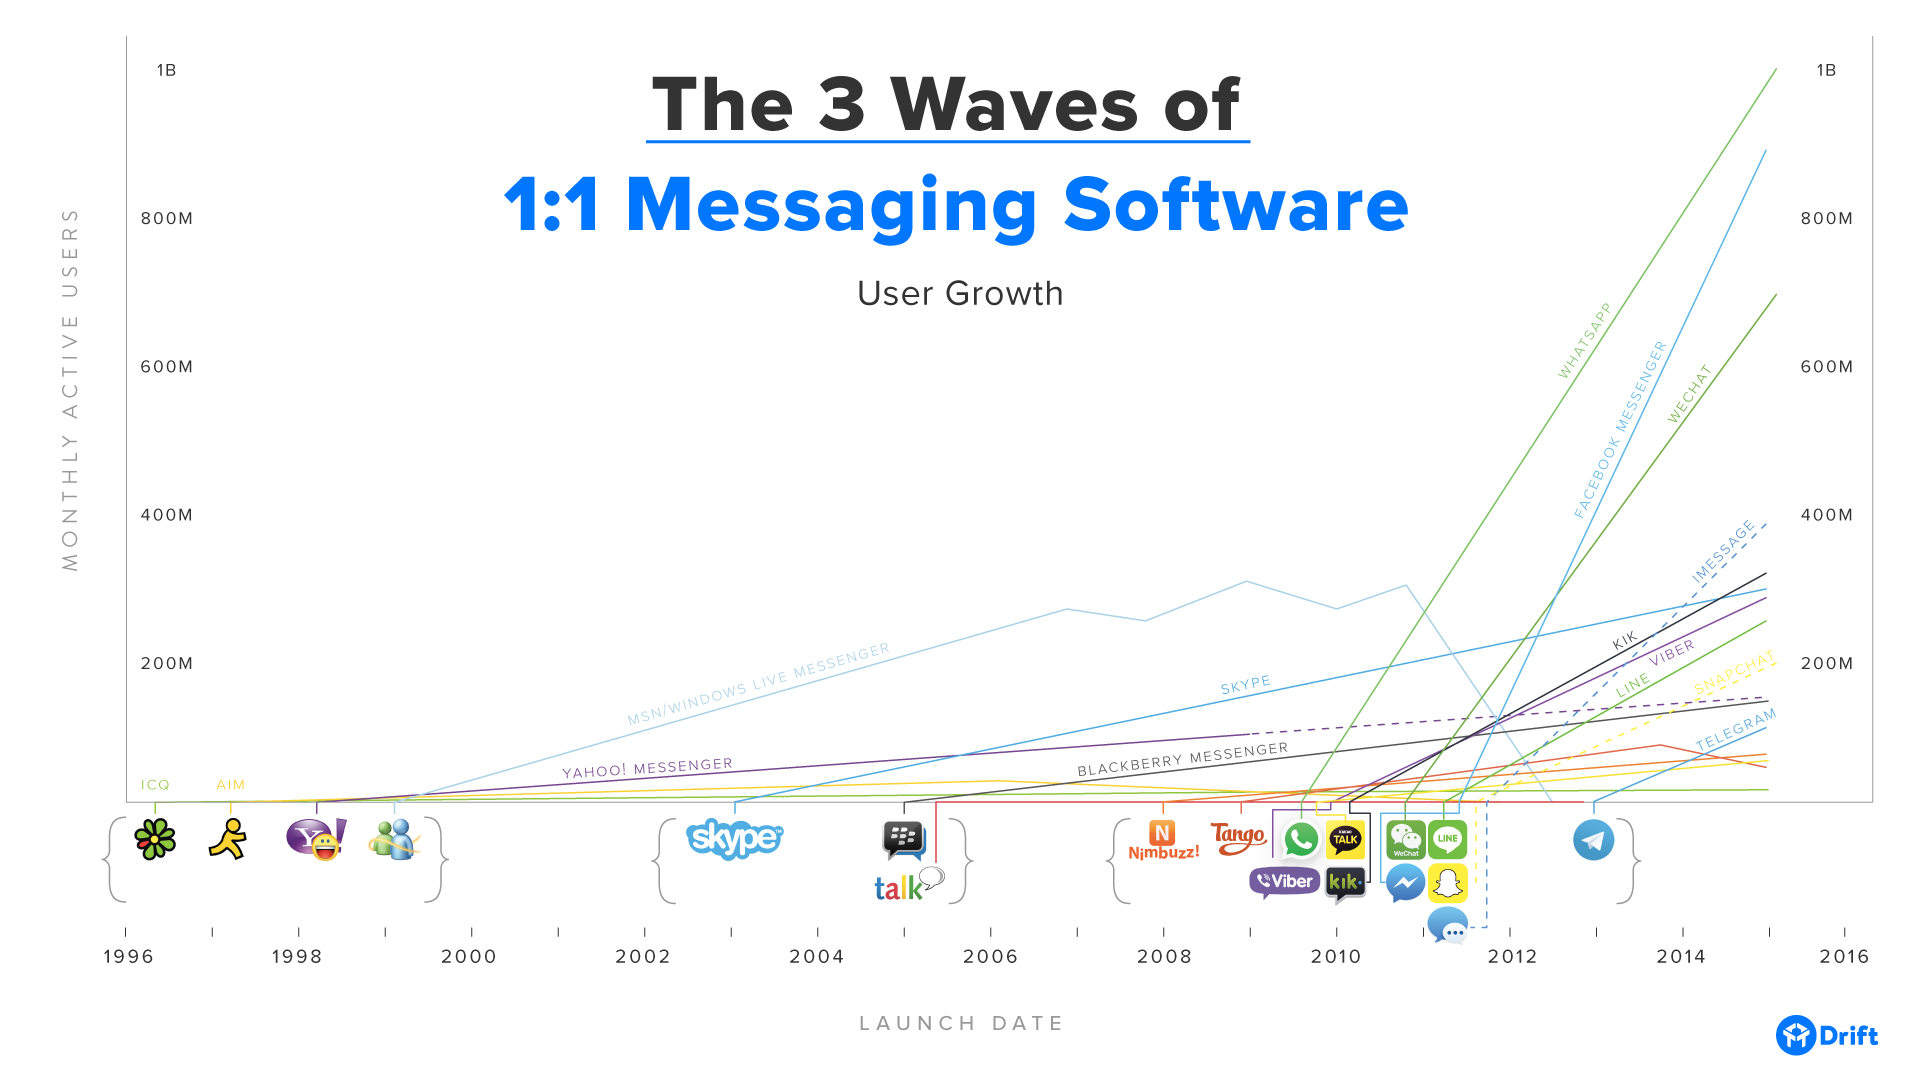 3-waves-messaging-software-user-growth.png